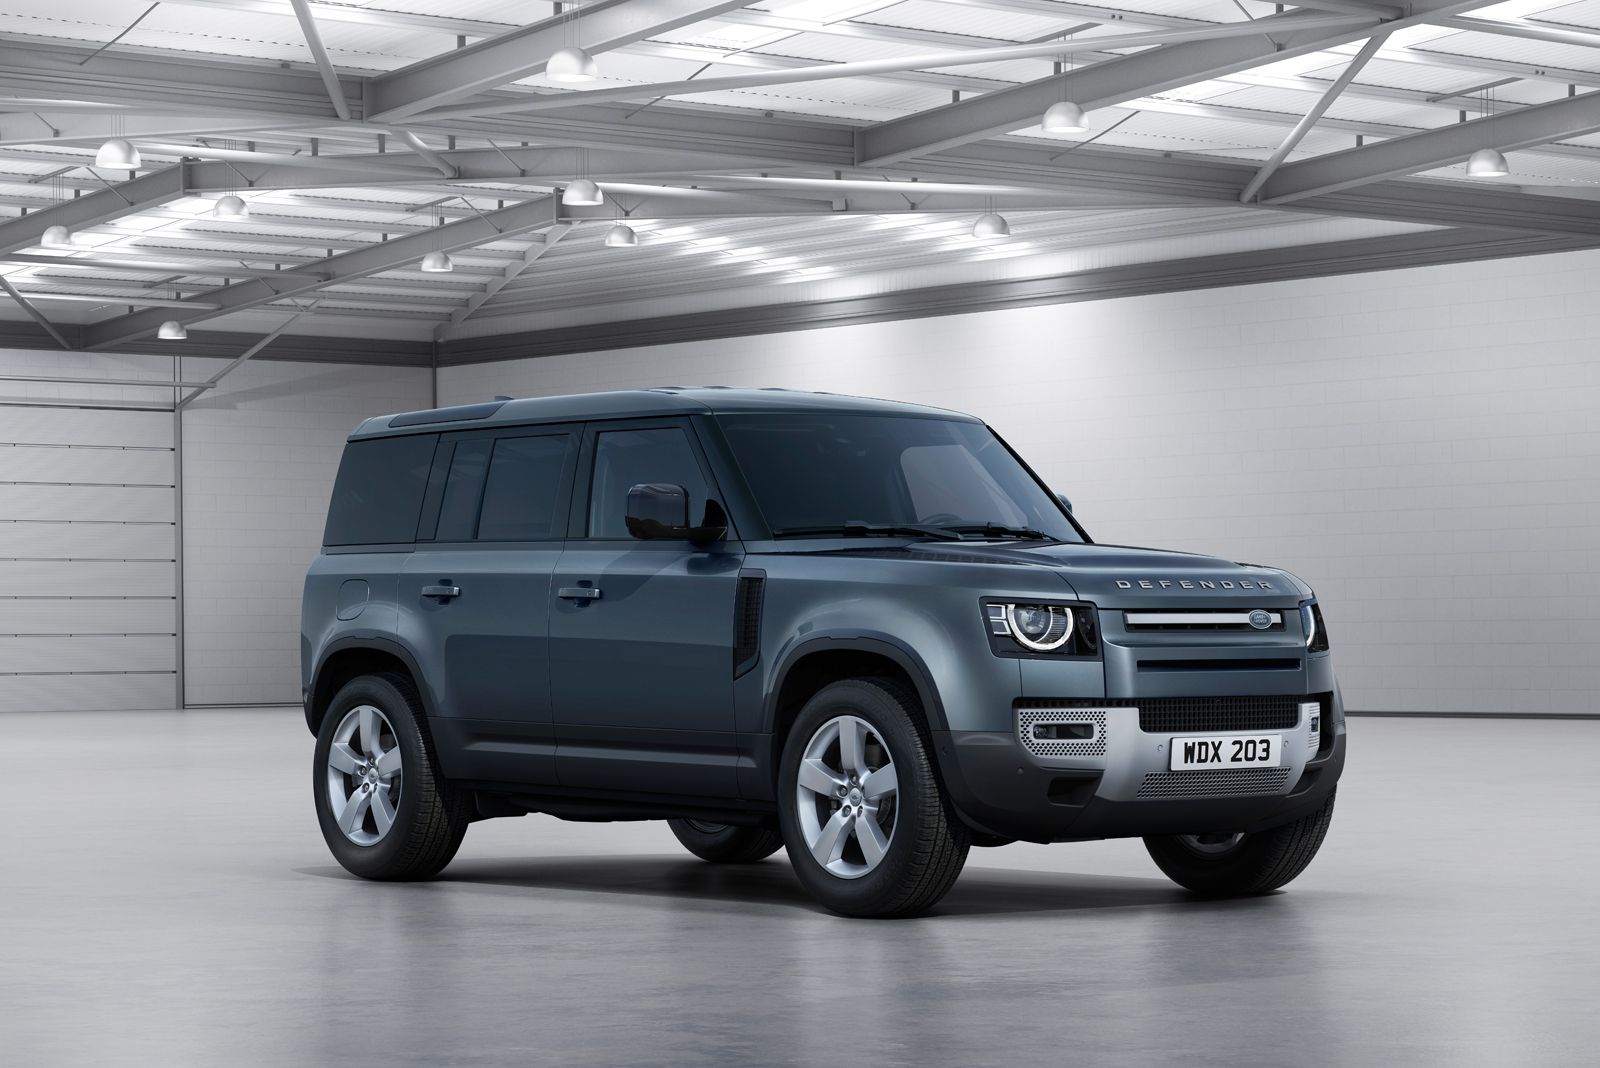 Land Rover's commercial vehicle range